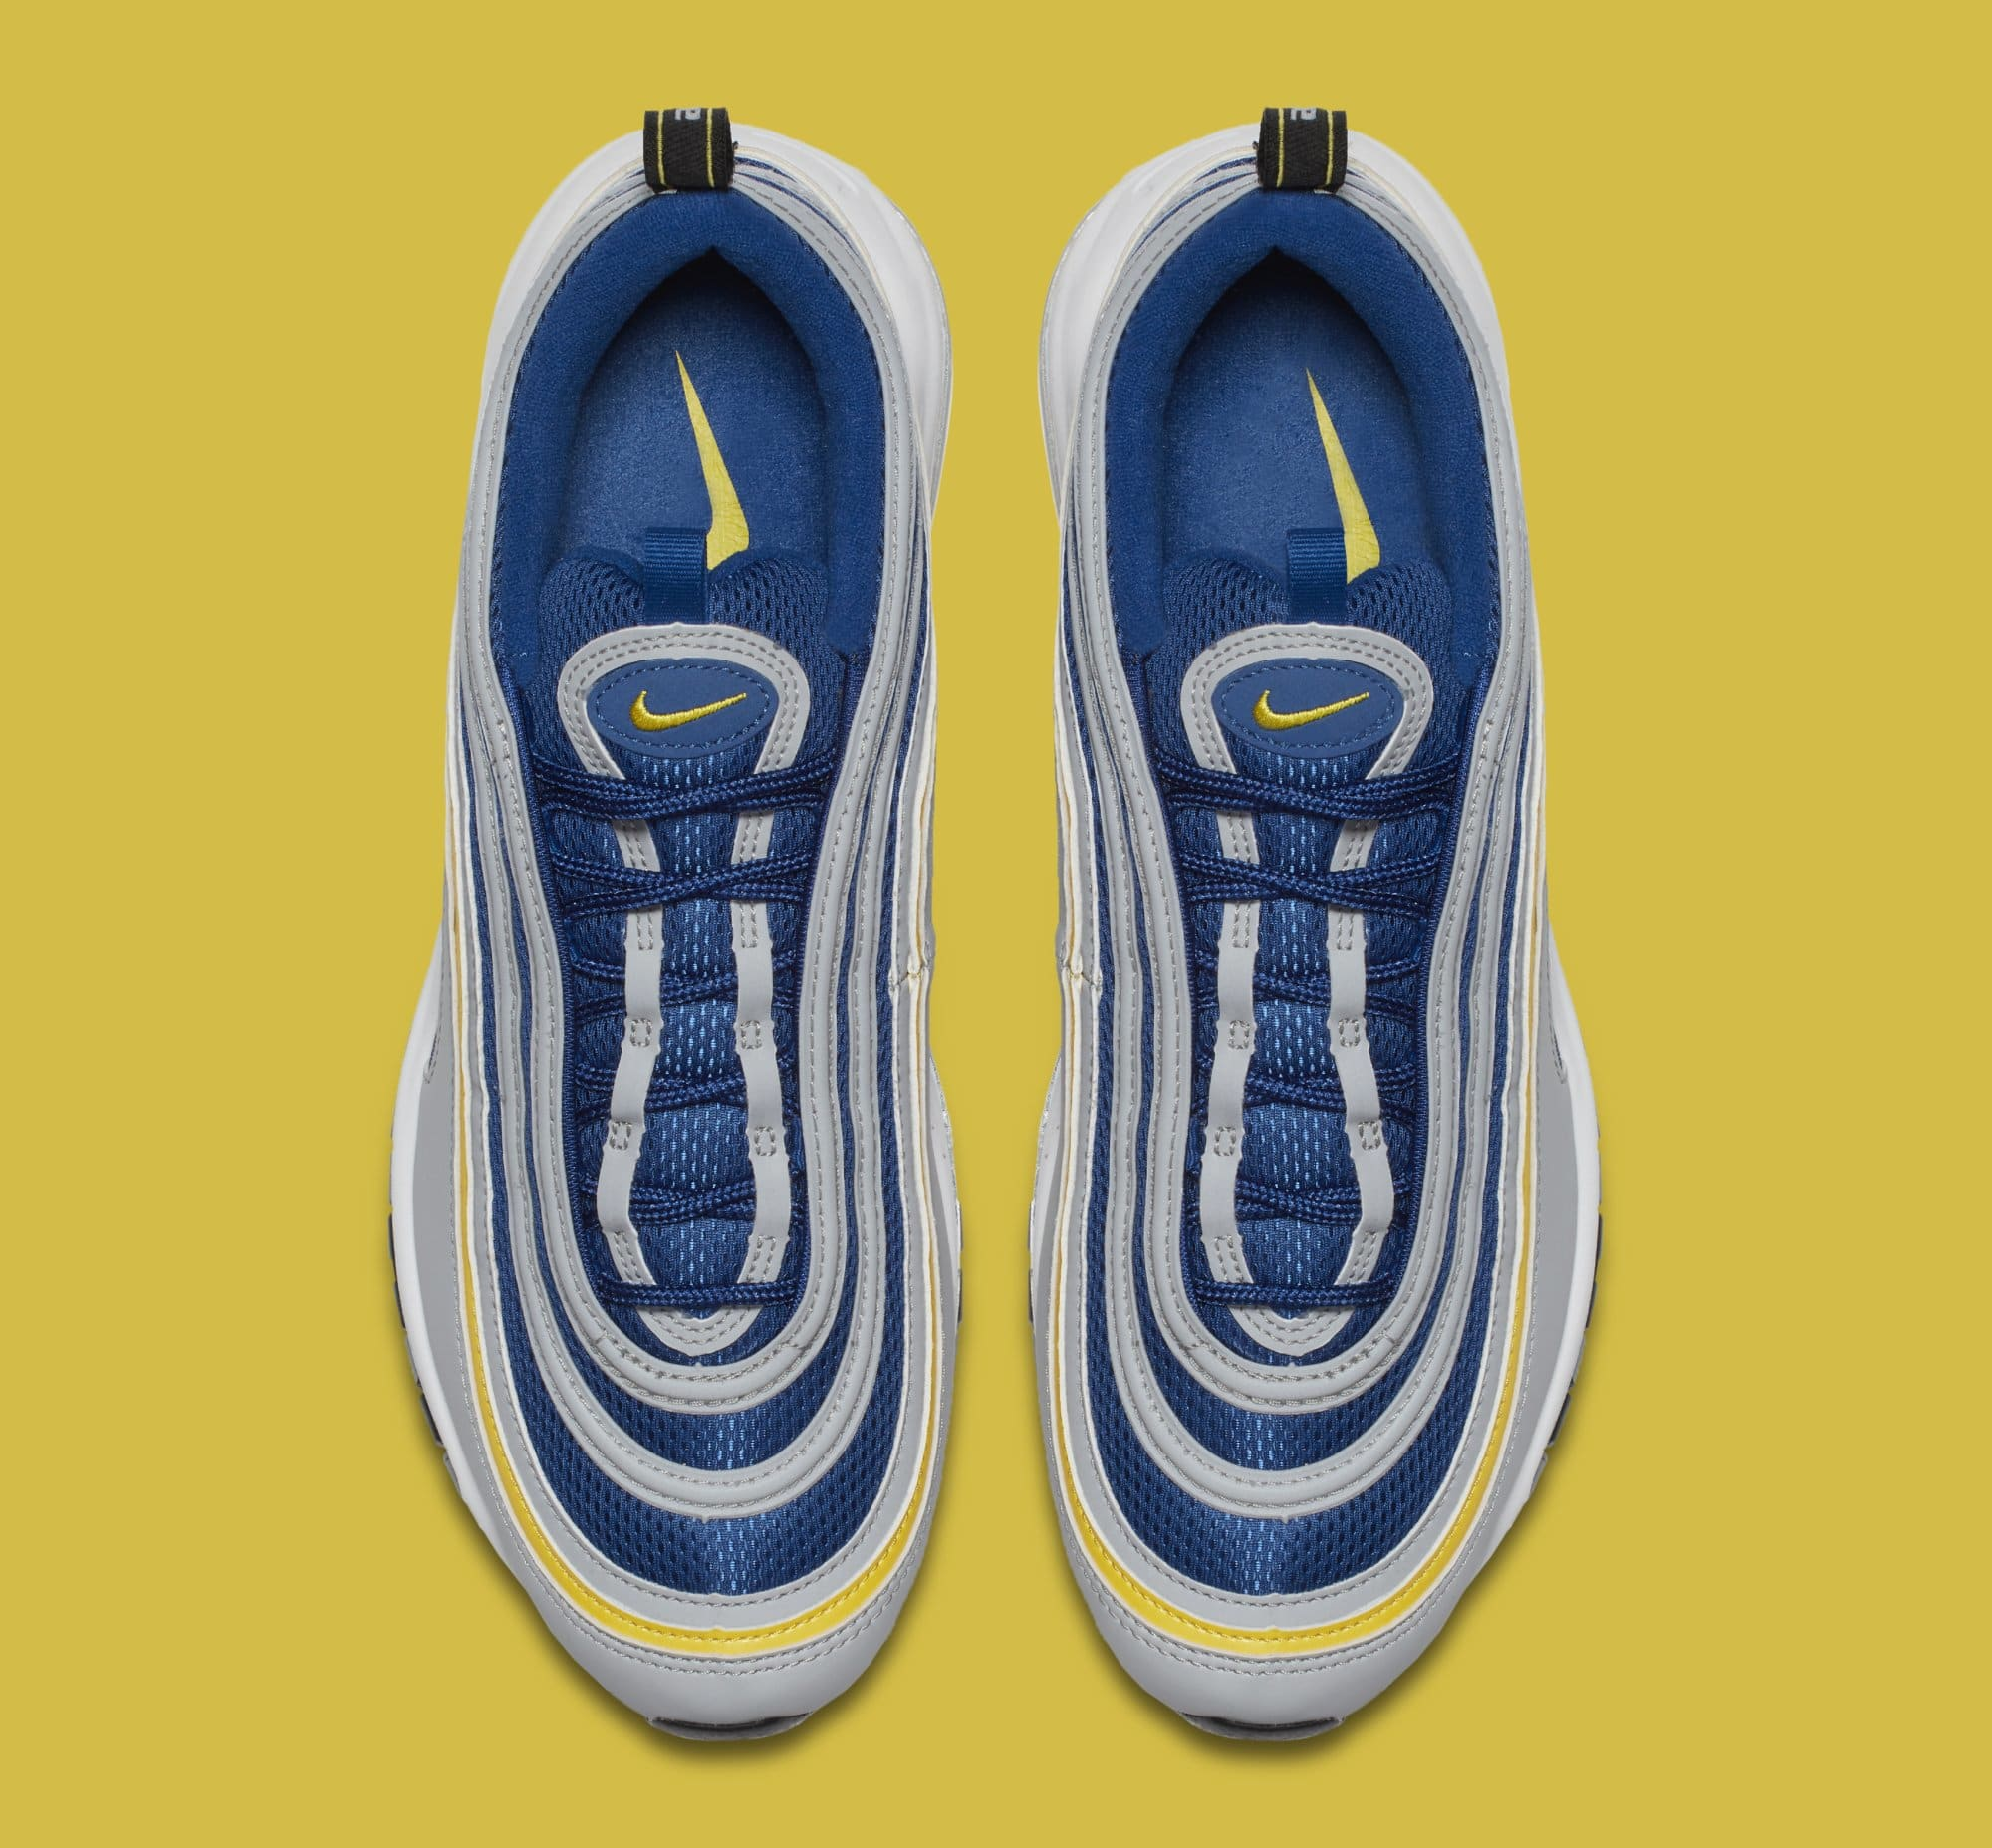 Nike Air Max 97 'Wolf Grey/Tour Yellow/Gym Blue' 921826-006 (Top)